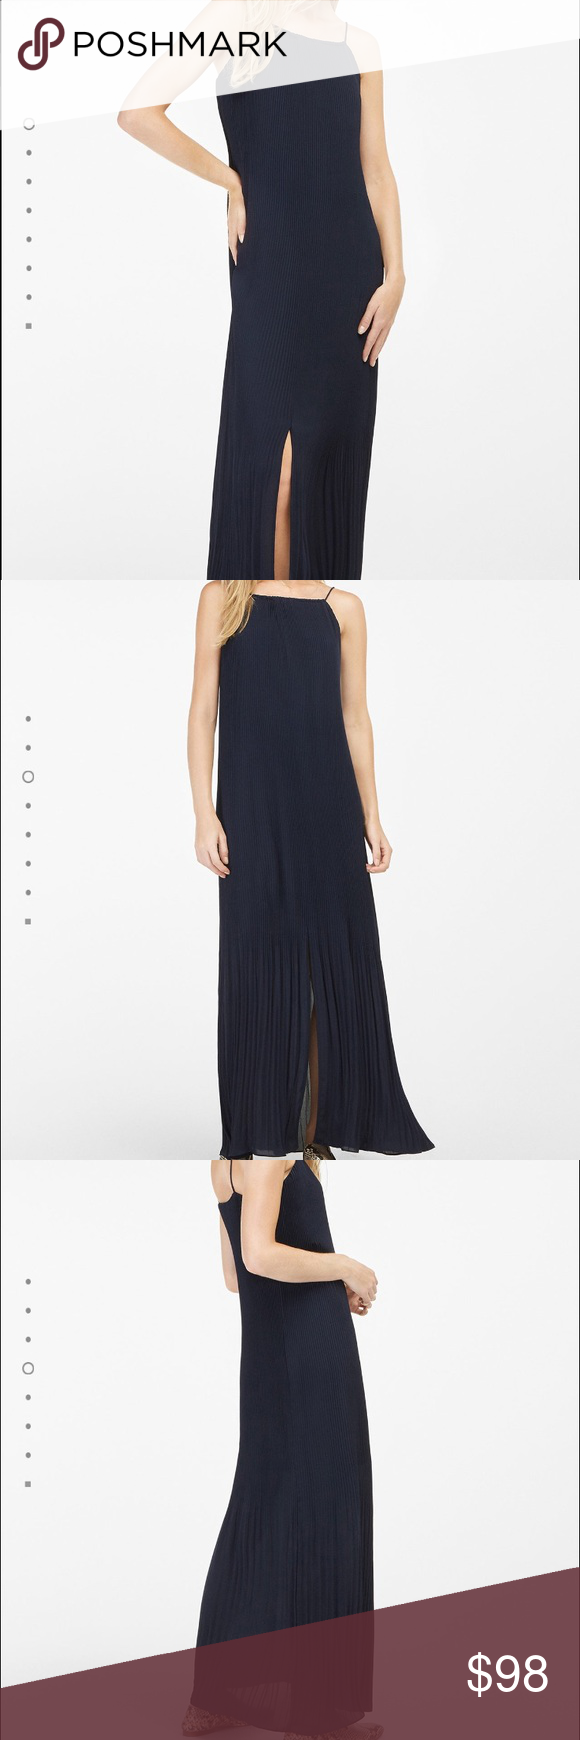 Massimo dutti navy blue long dress nwt summer hands and maxis